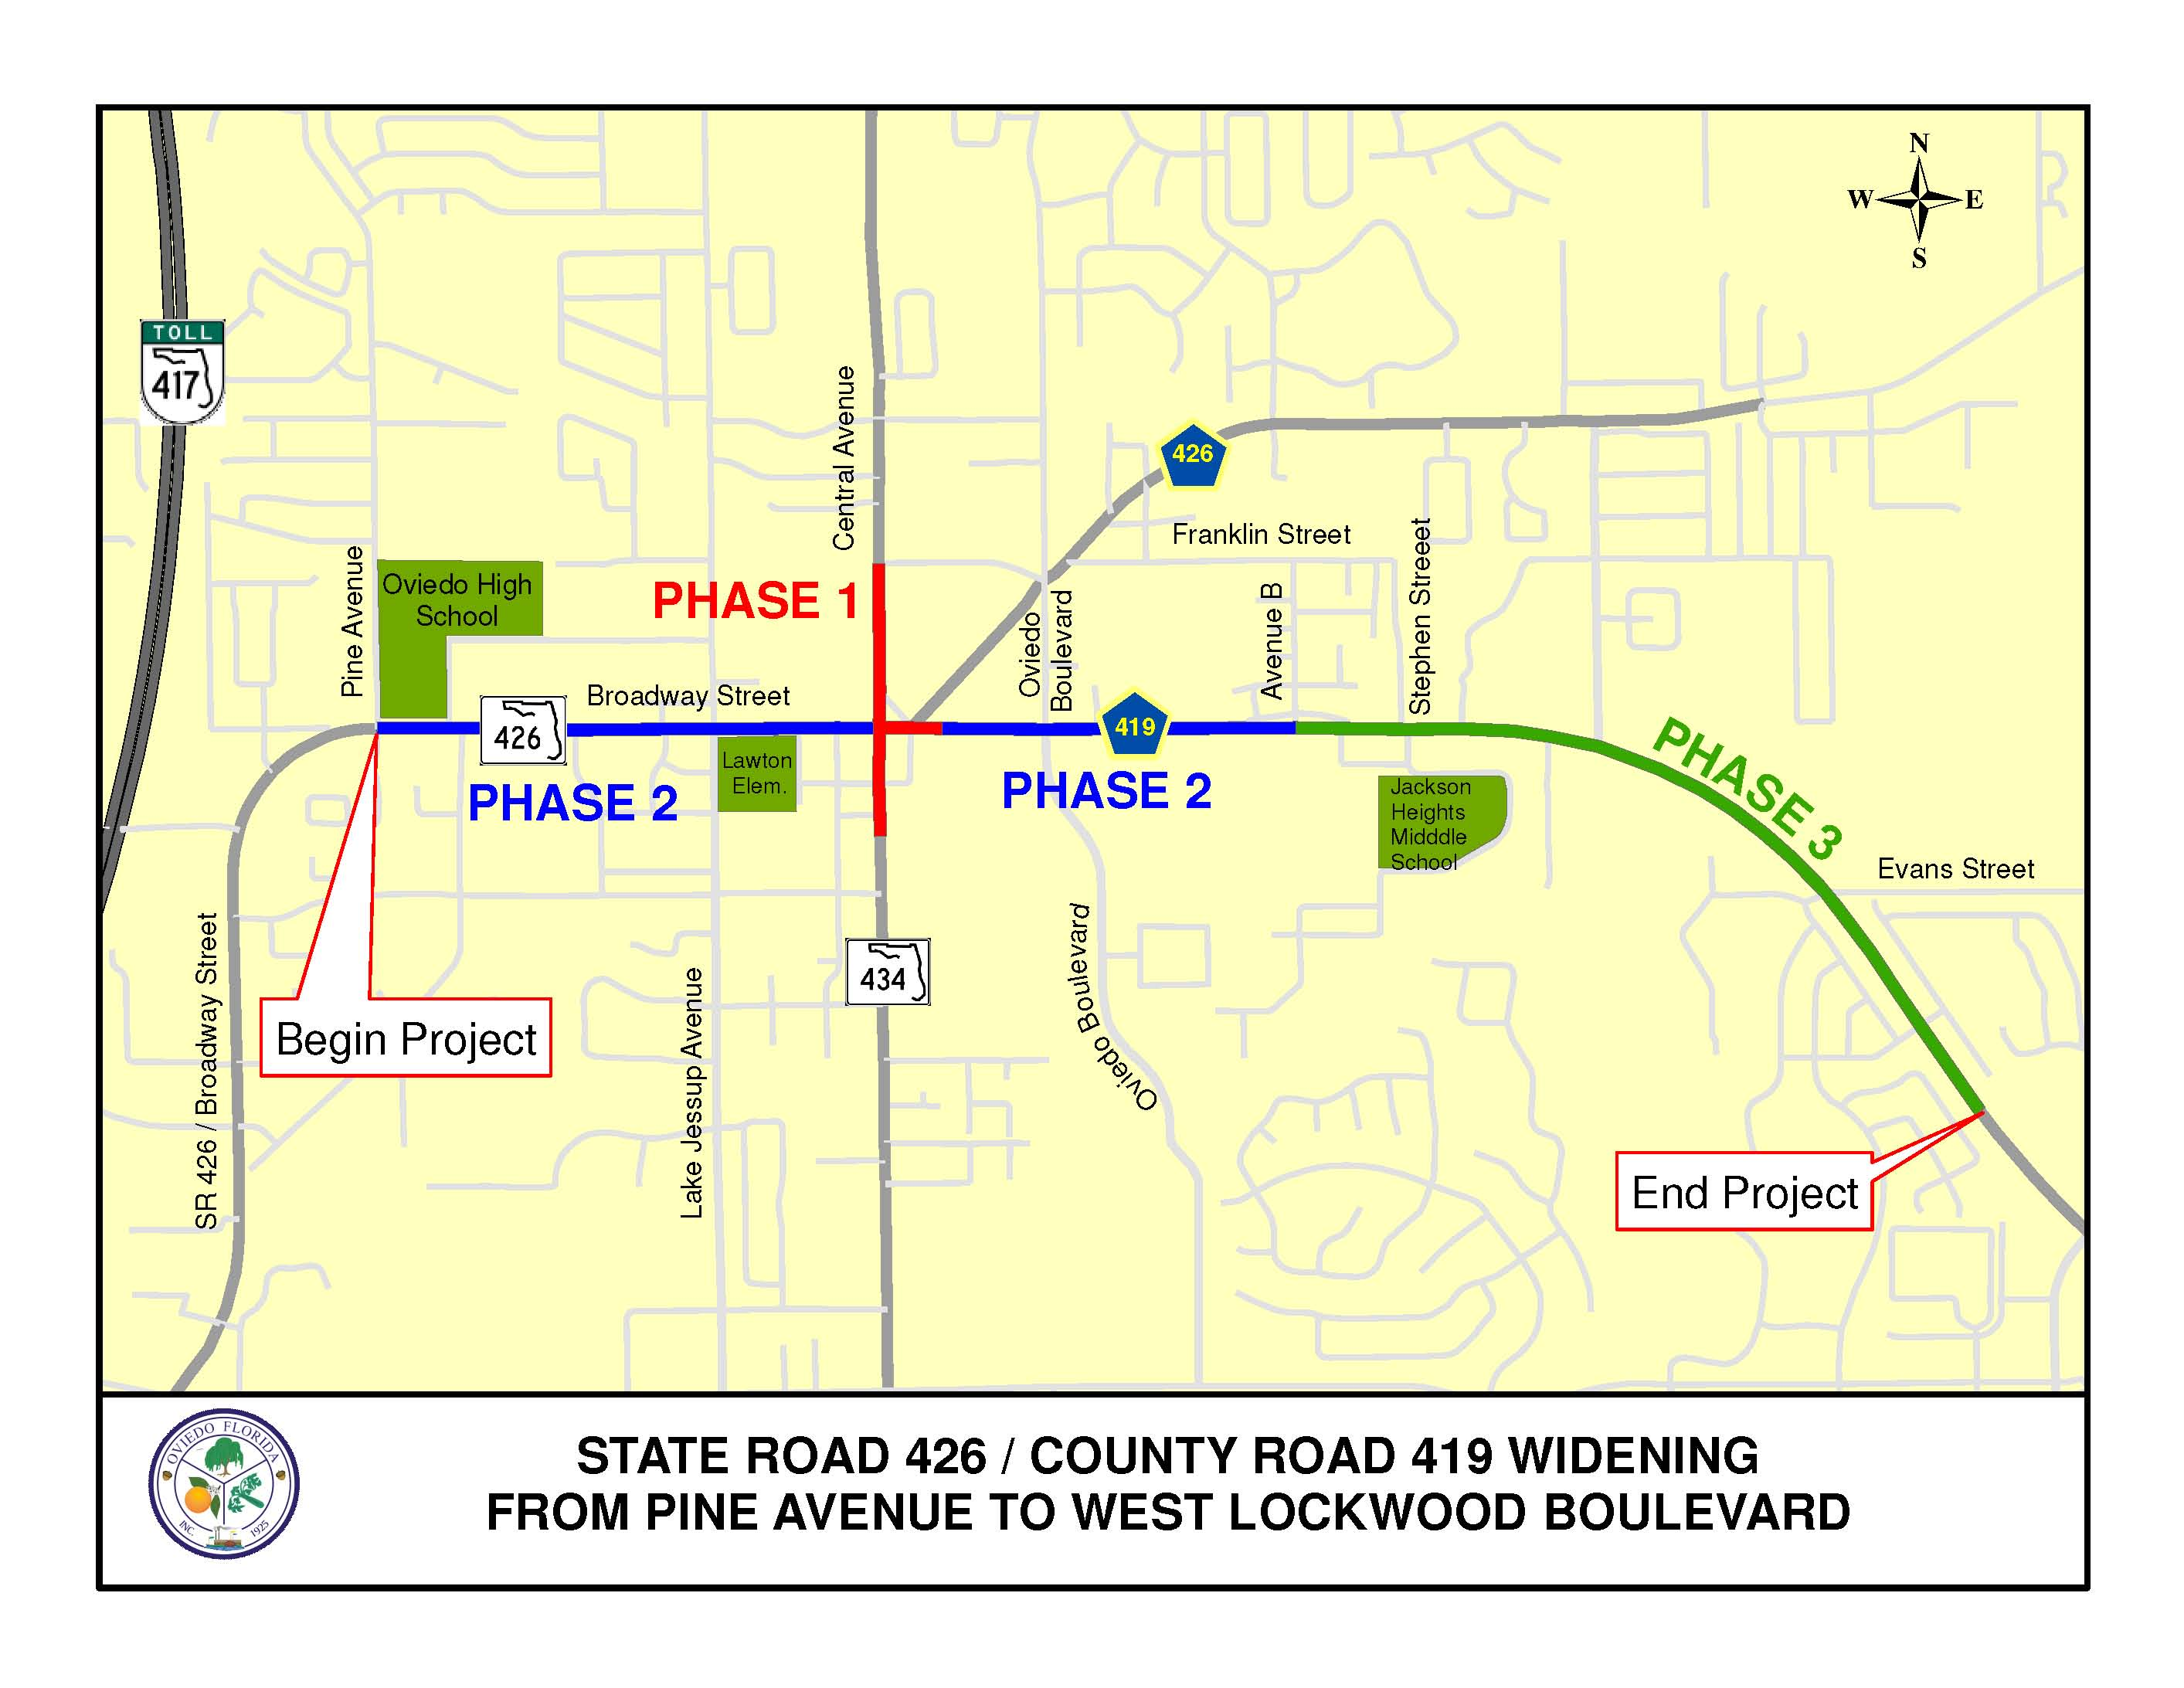 State Road 426 Widening Project Outline